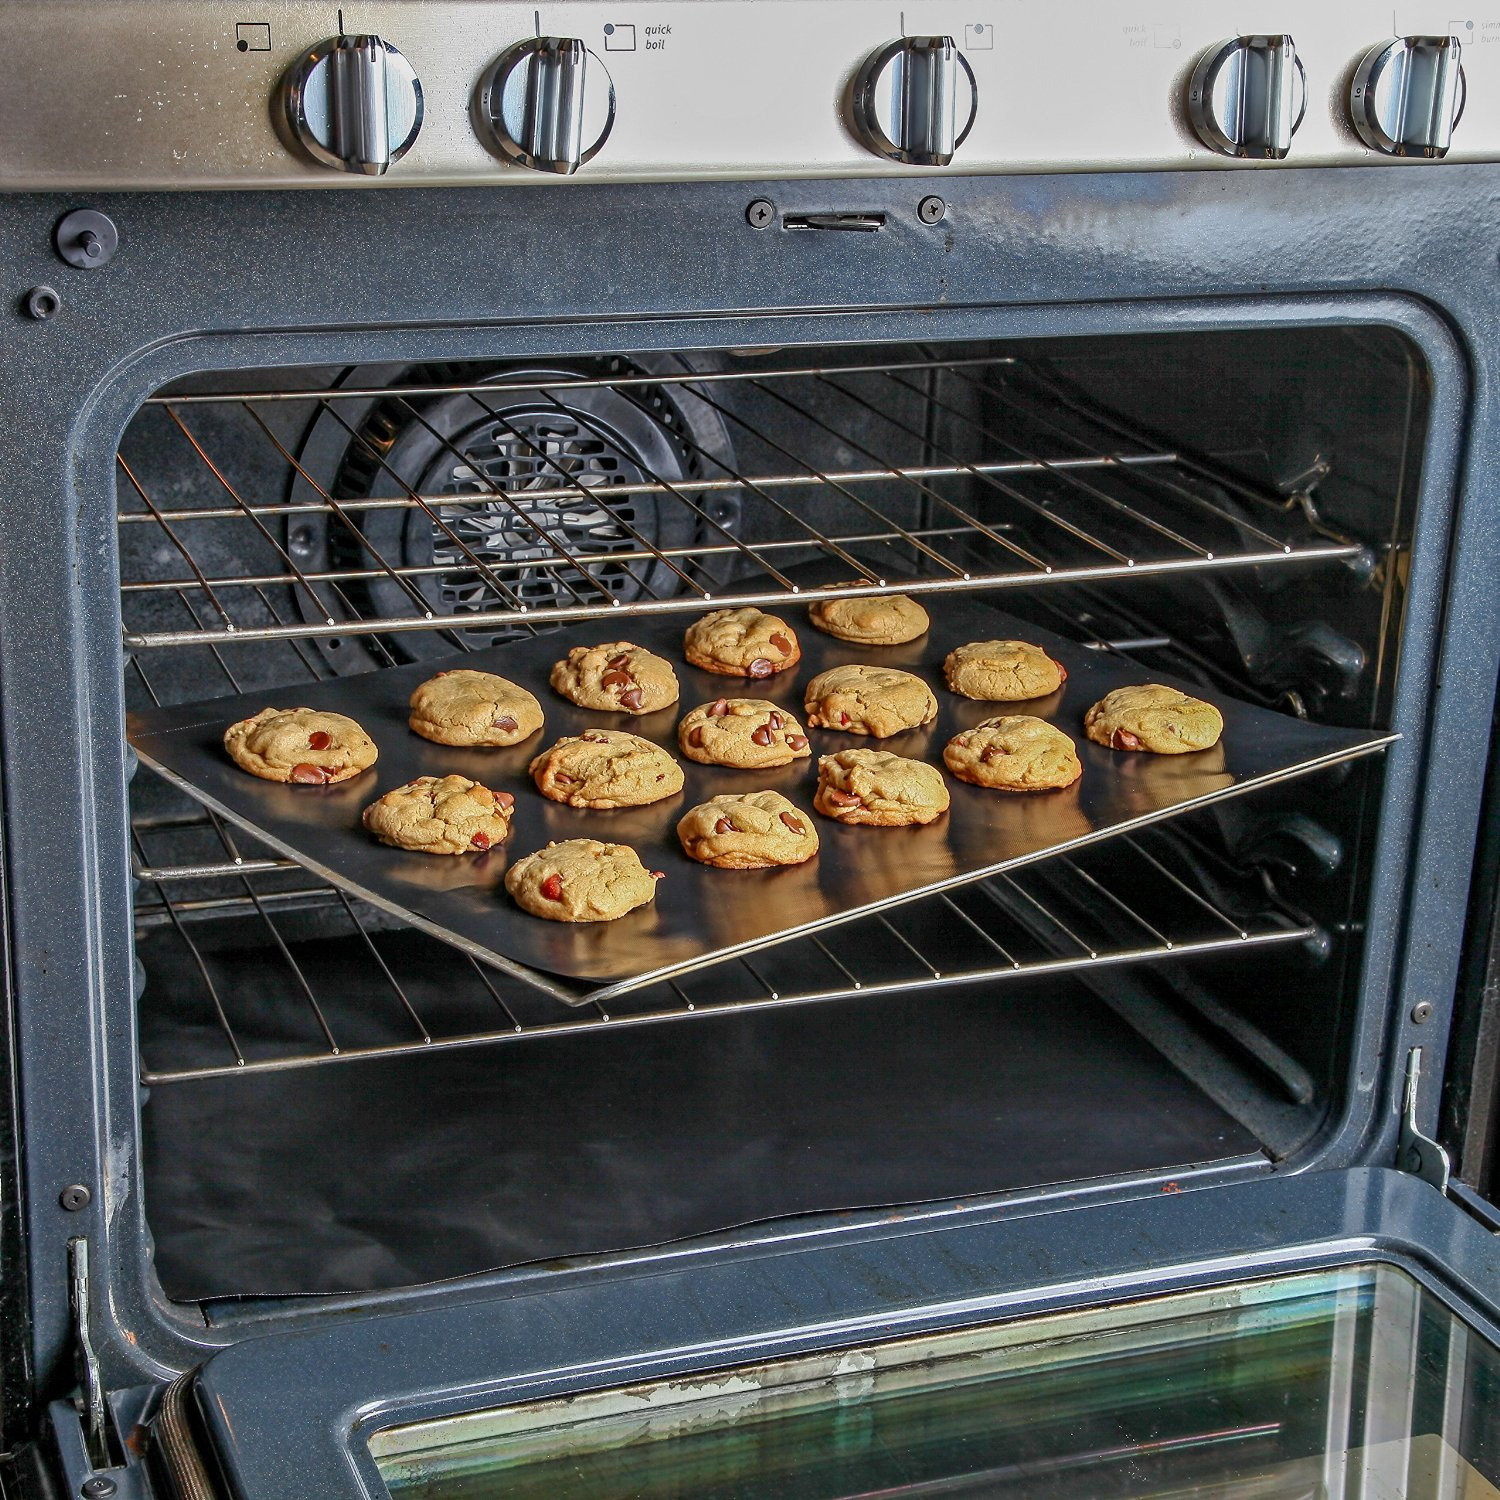 11 Gadgets that will make your Oven and Stove Amazing | www.onecrazyhouse.com